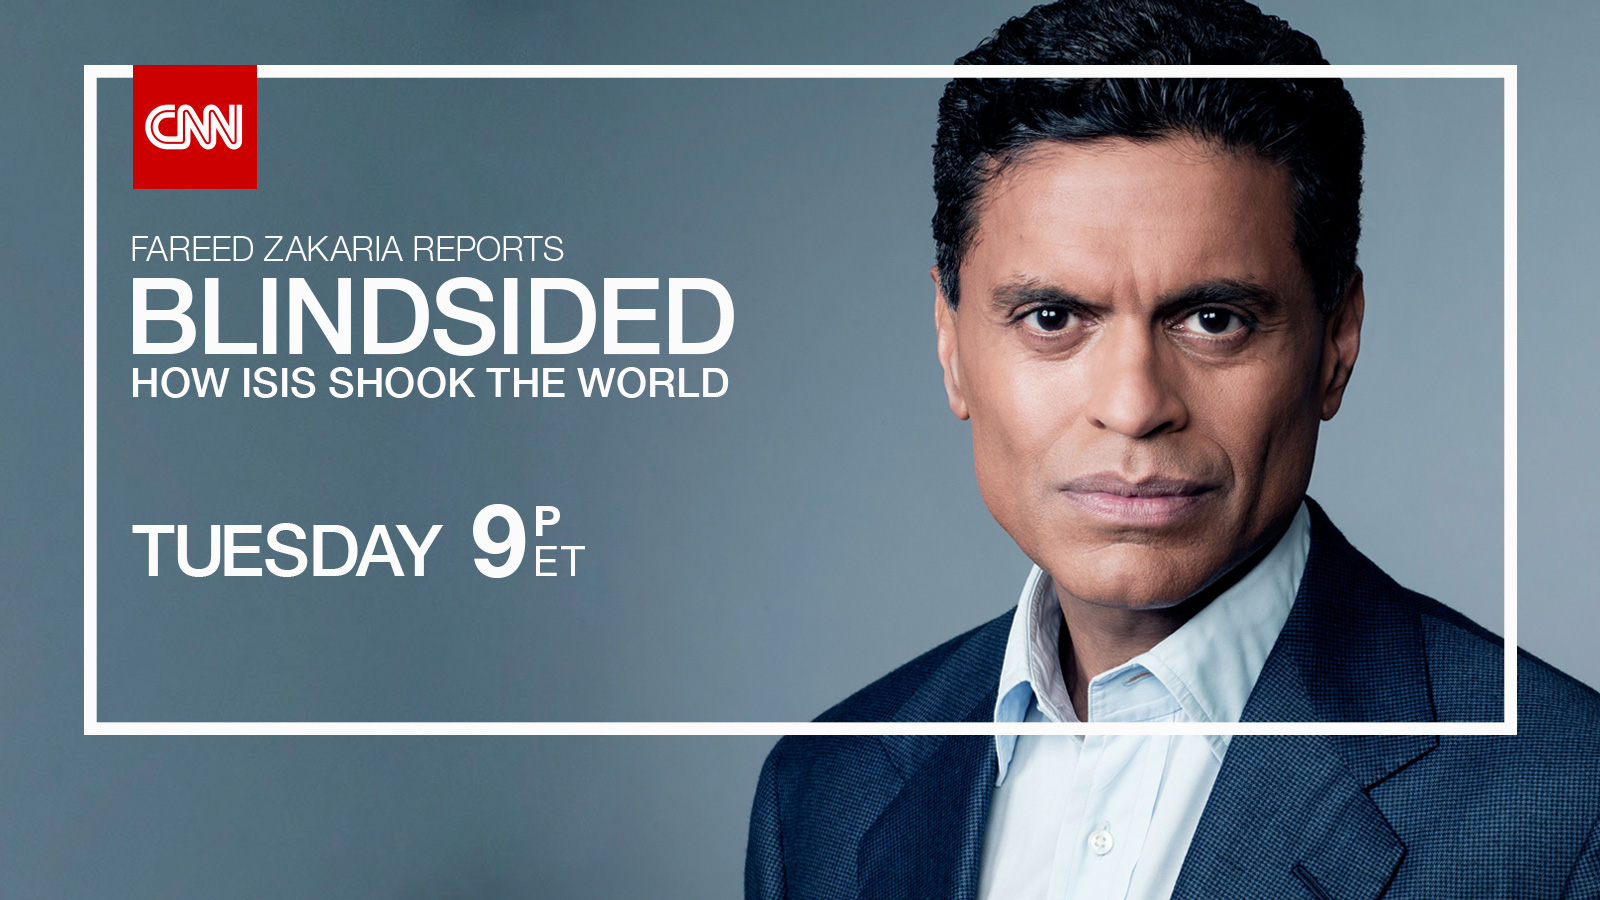 Blindsided: How ISIS Shook the World to air TONIGHT, Nov. 17 on CNN/U.S. and CNN International #FZGPS